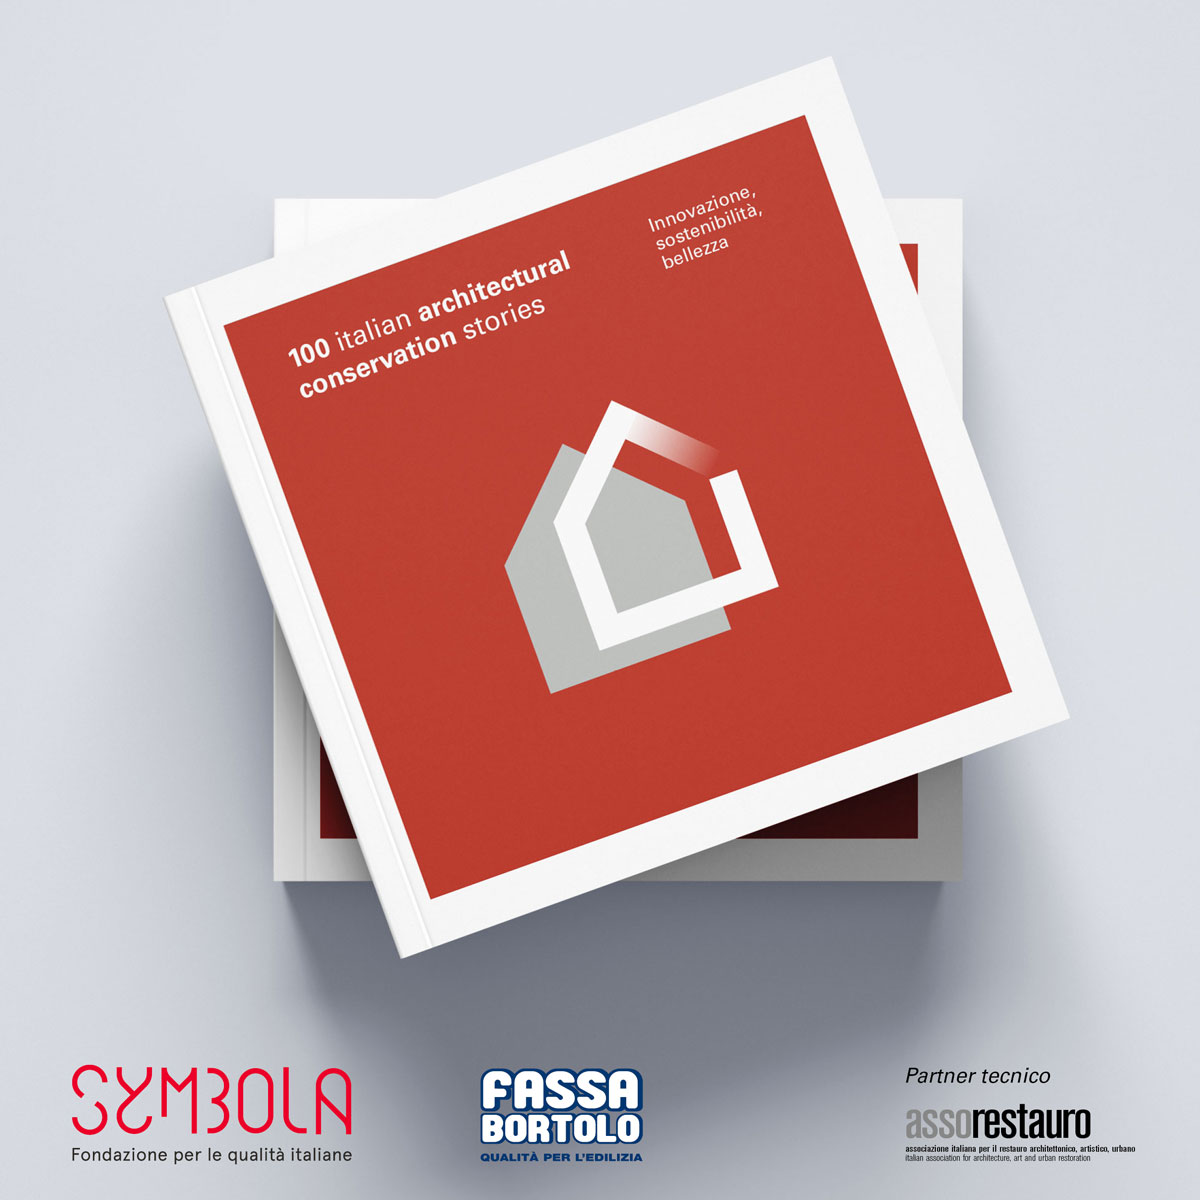 100 italian architectural conservation stories prize by symbola e fassa bortolo